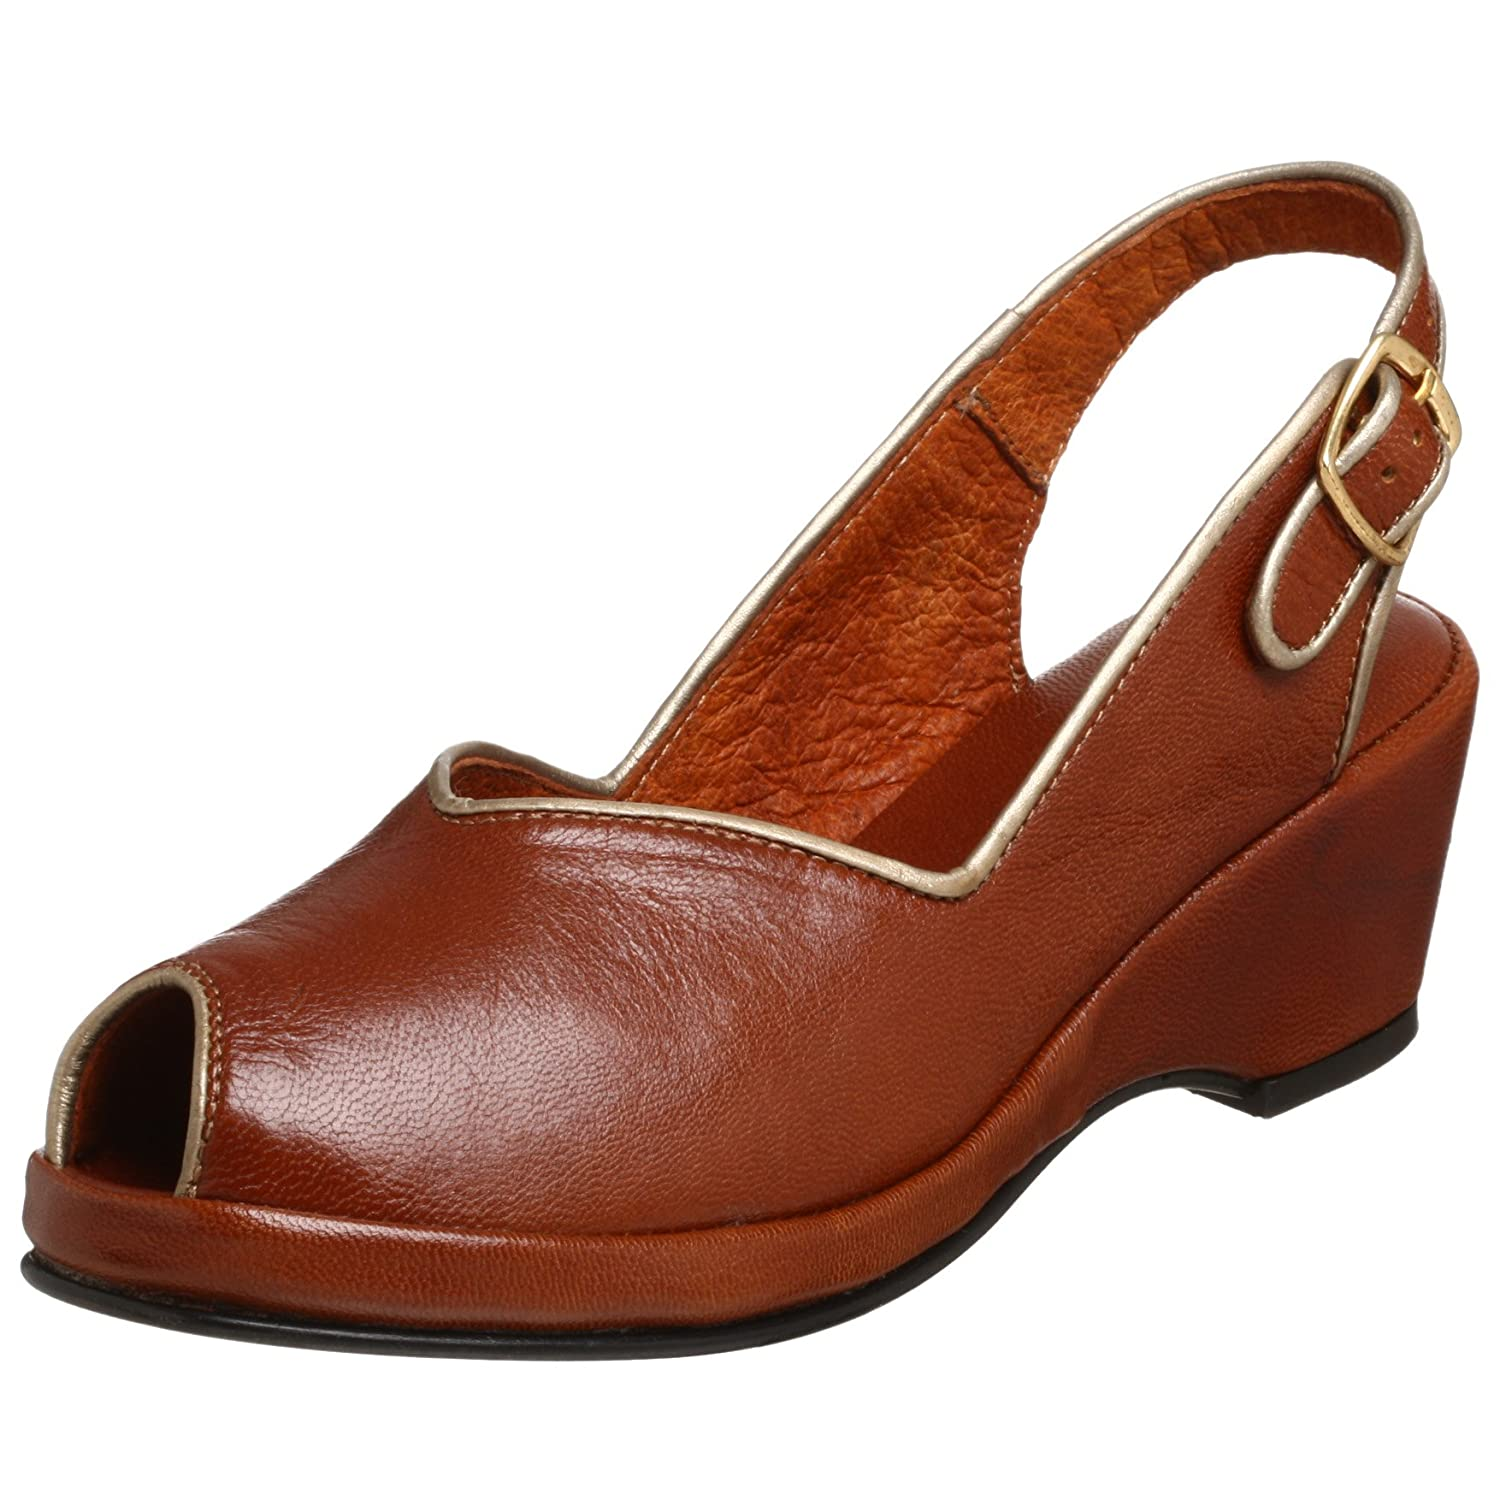 Re-Mix Vintage Women's Gloria Peep Toe  Slingback - Free Overnight Shipping & Return Shipping: Endless.com from endless.com